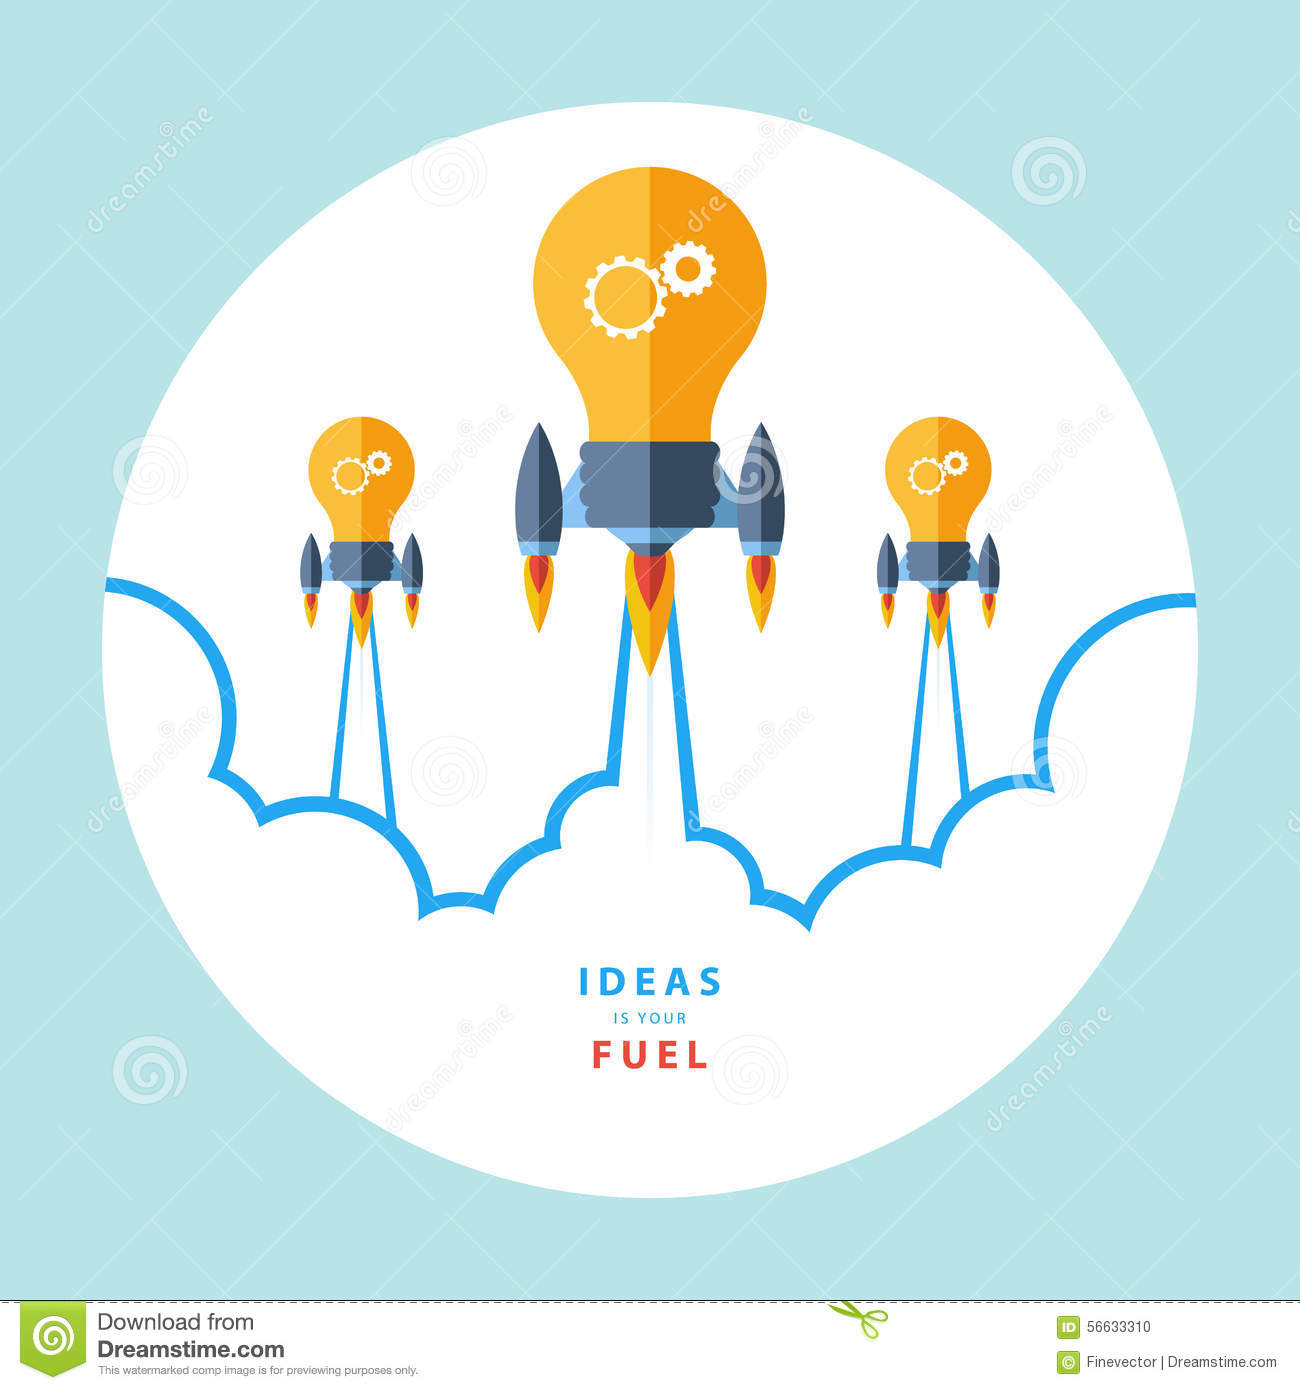 ideas is your fuel flat design colorful vector